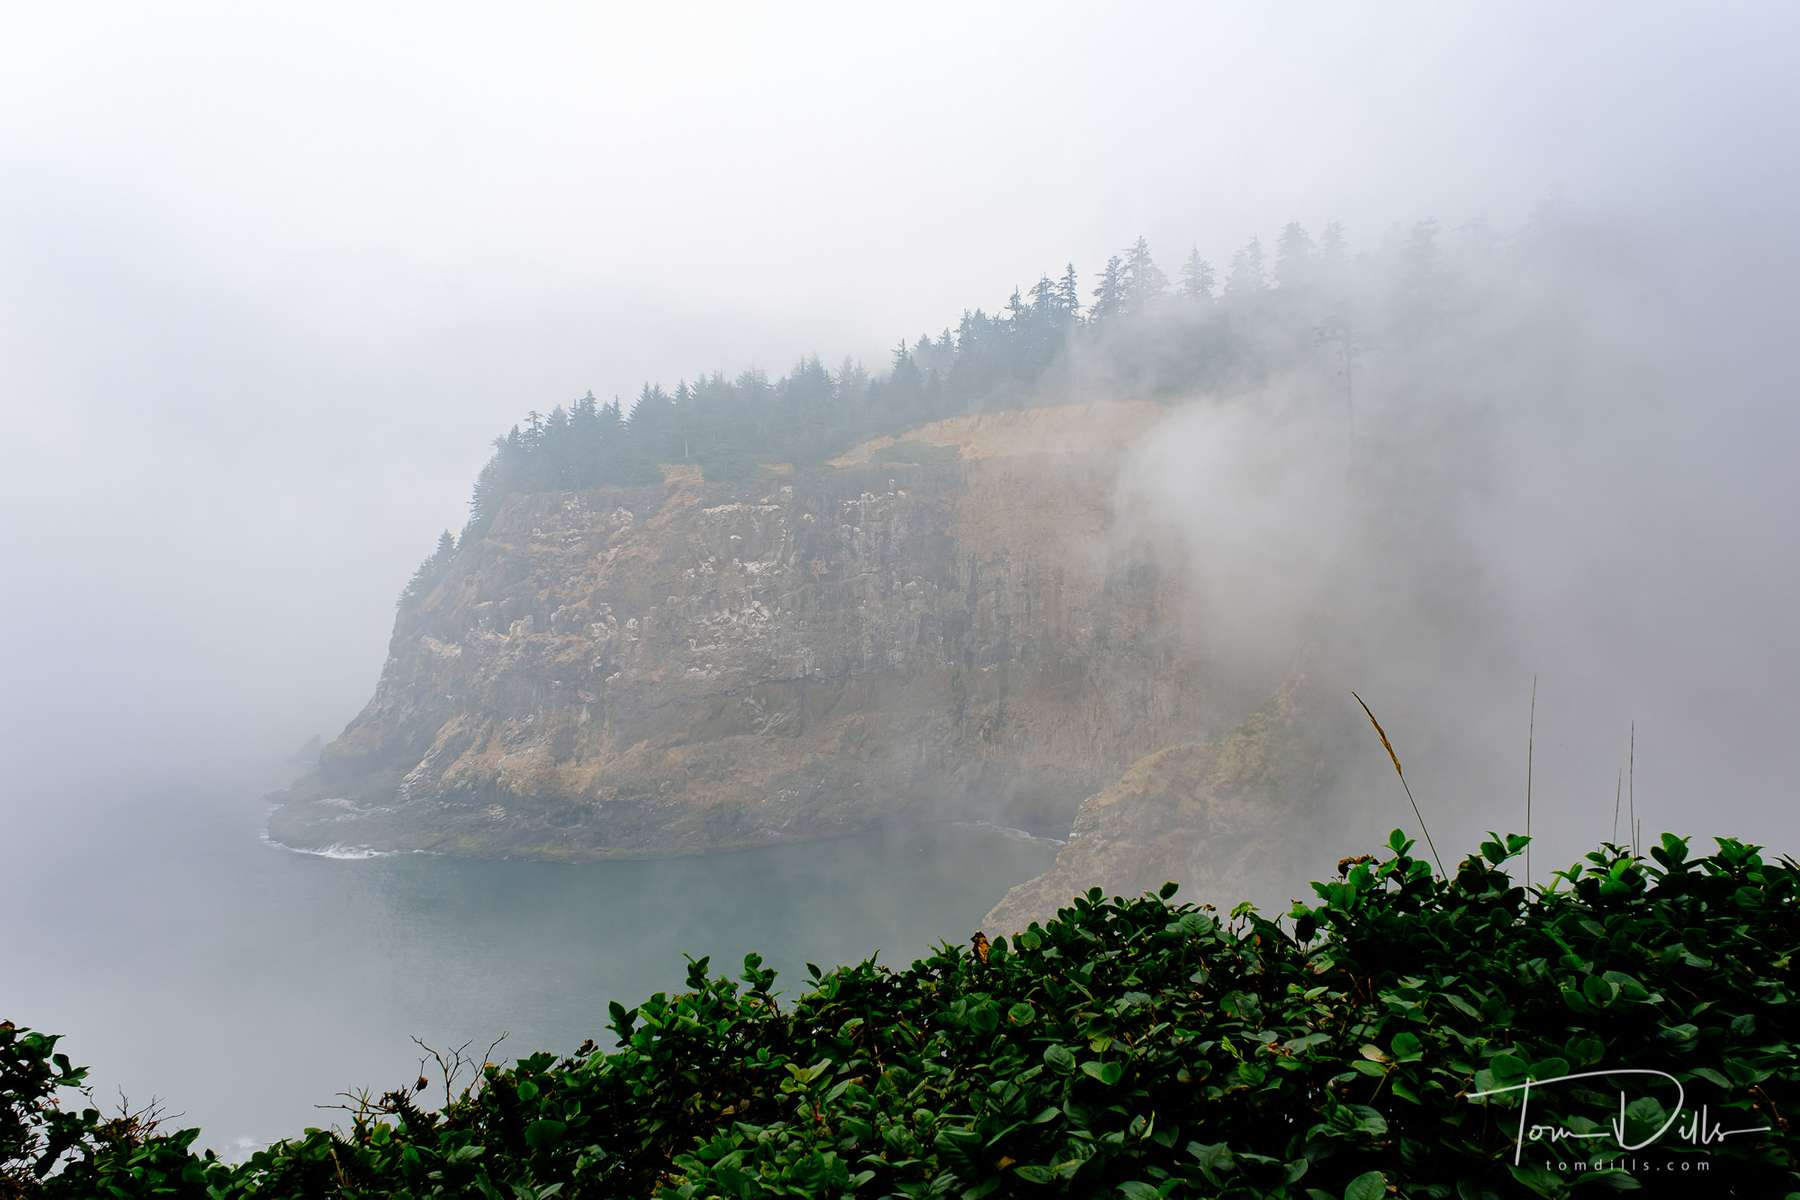 Foggy views from Cape Mears, Oregon